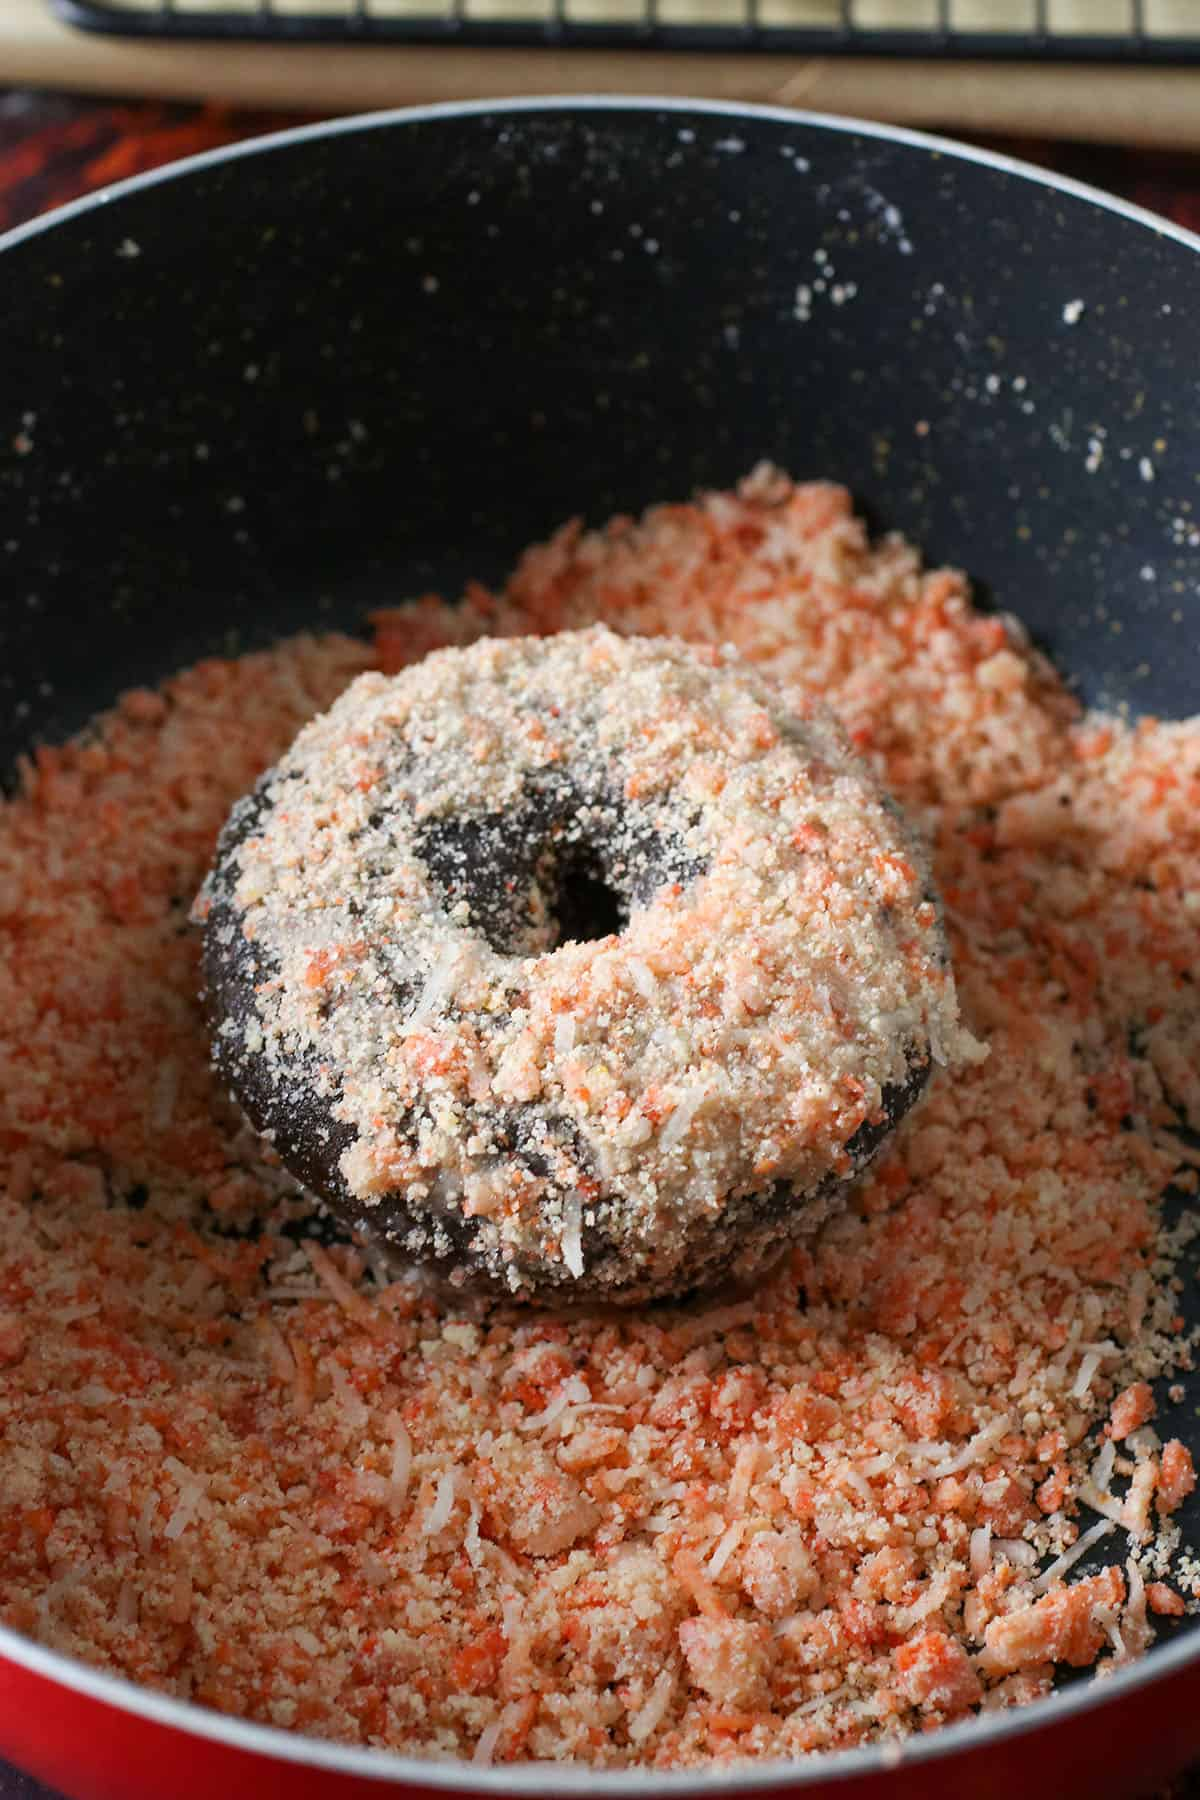 Coating the chocolate donut in butternut streusel.